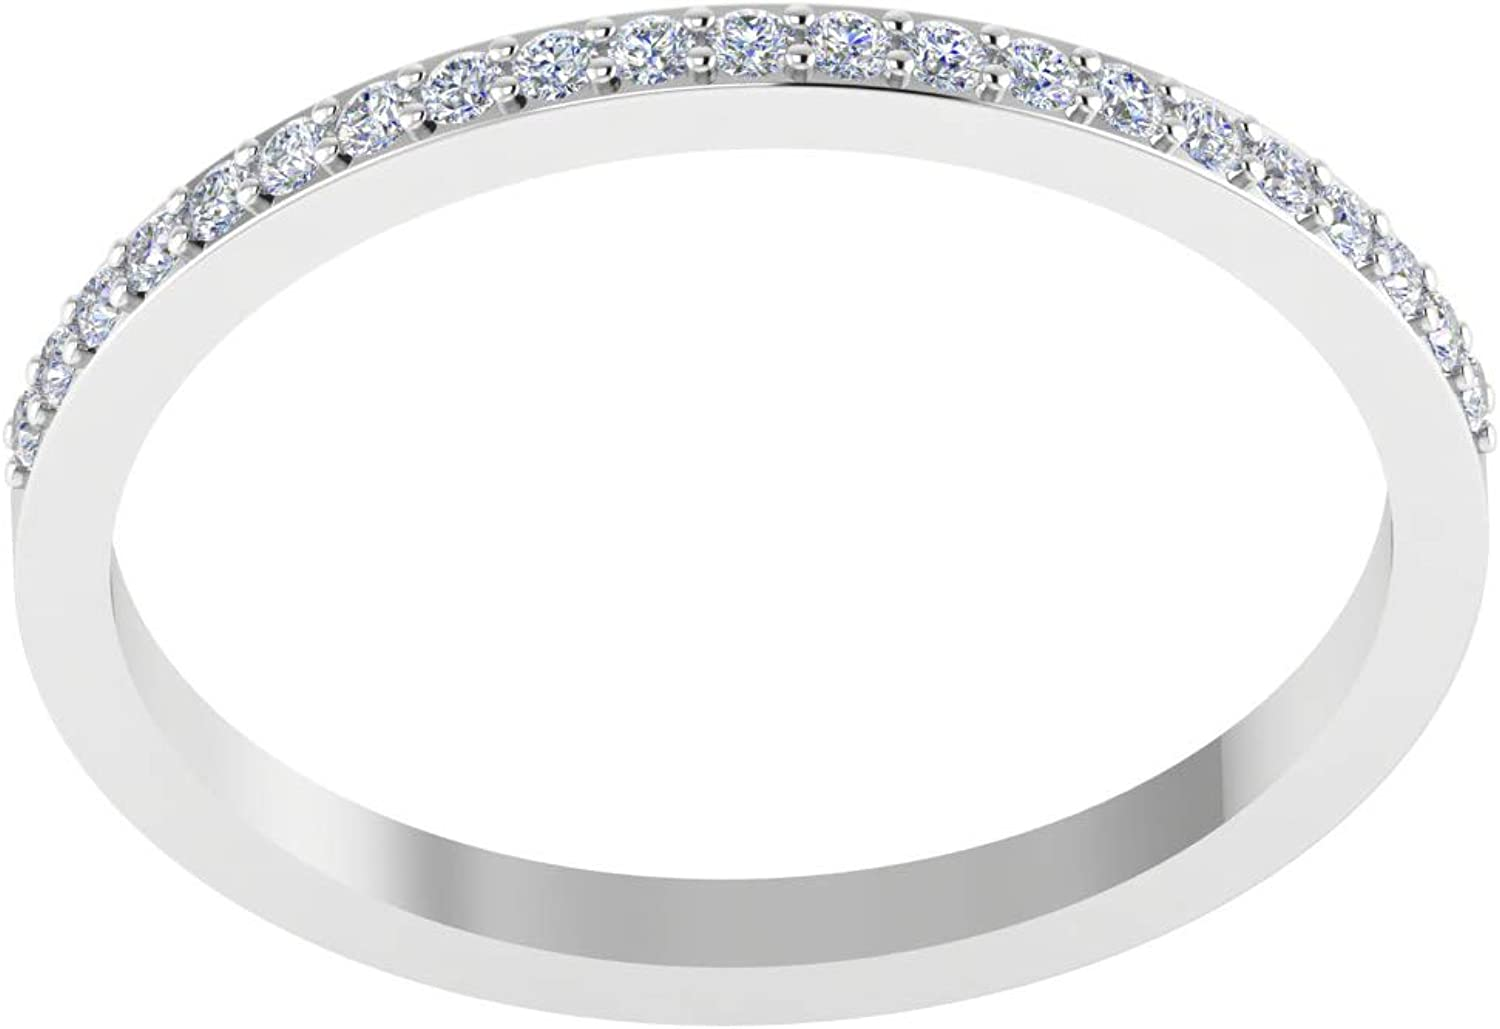 ASHNE JEWELS IGI Certified, 0.17ct White Diamond Eternity Band Ring Fine Jewelry Made in 14K Solid White Gold For Women & Girls